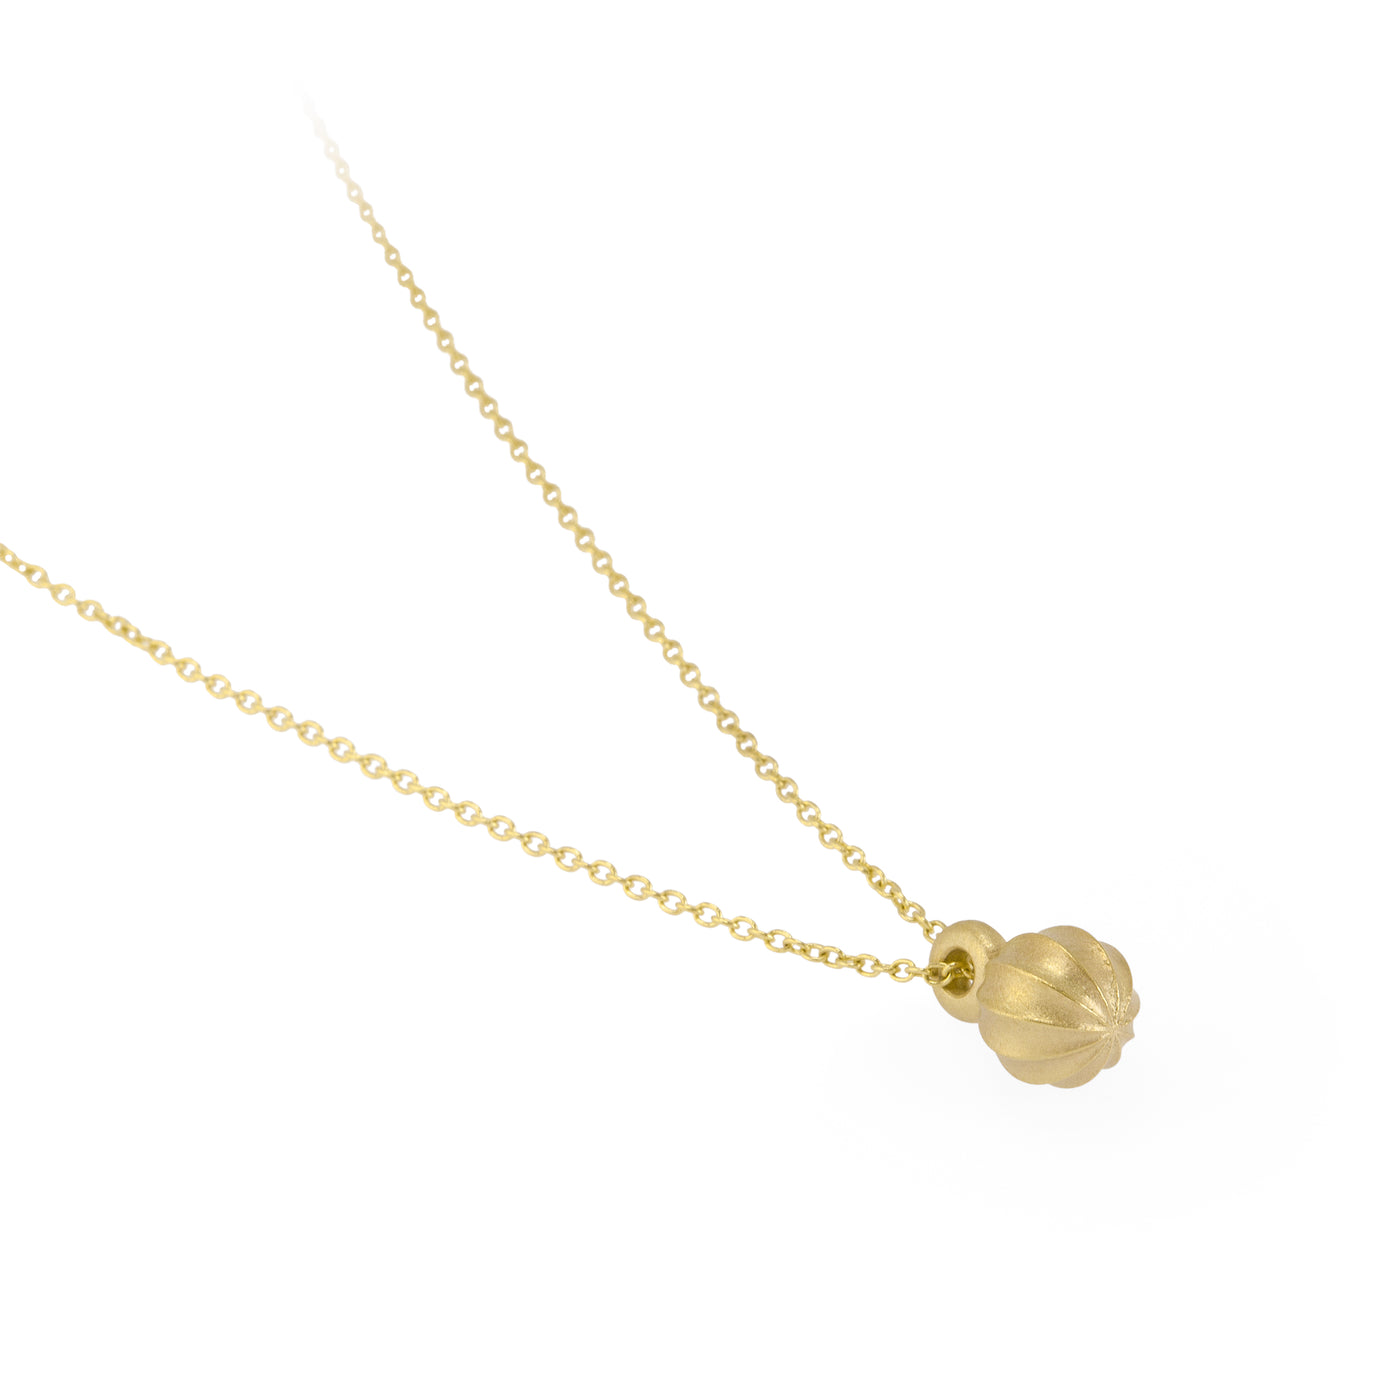 Sustainable gold necklace. This ethical Seed Pendant is handmade in Cape Town in recycled gold from e-waste.